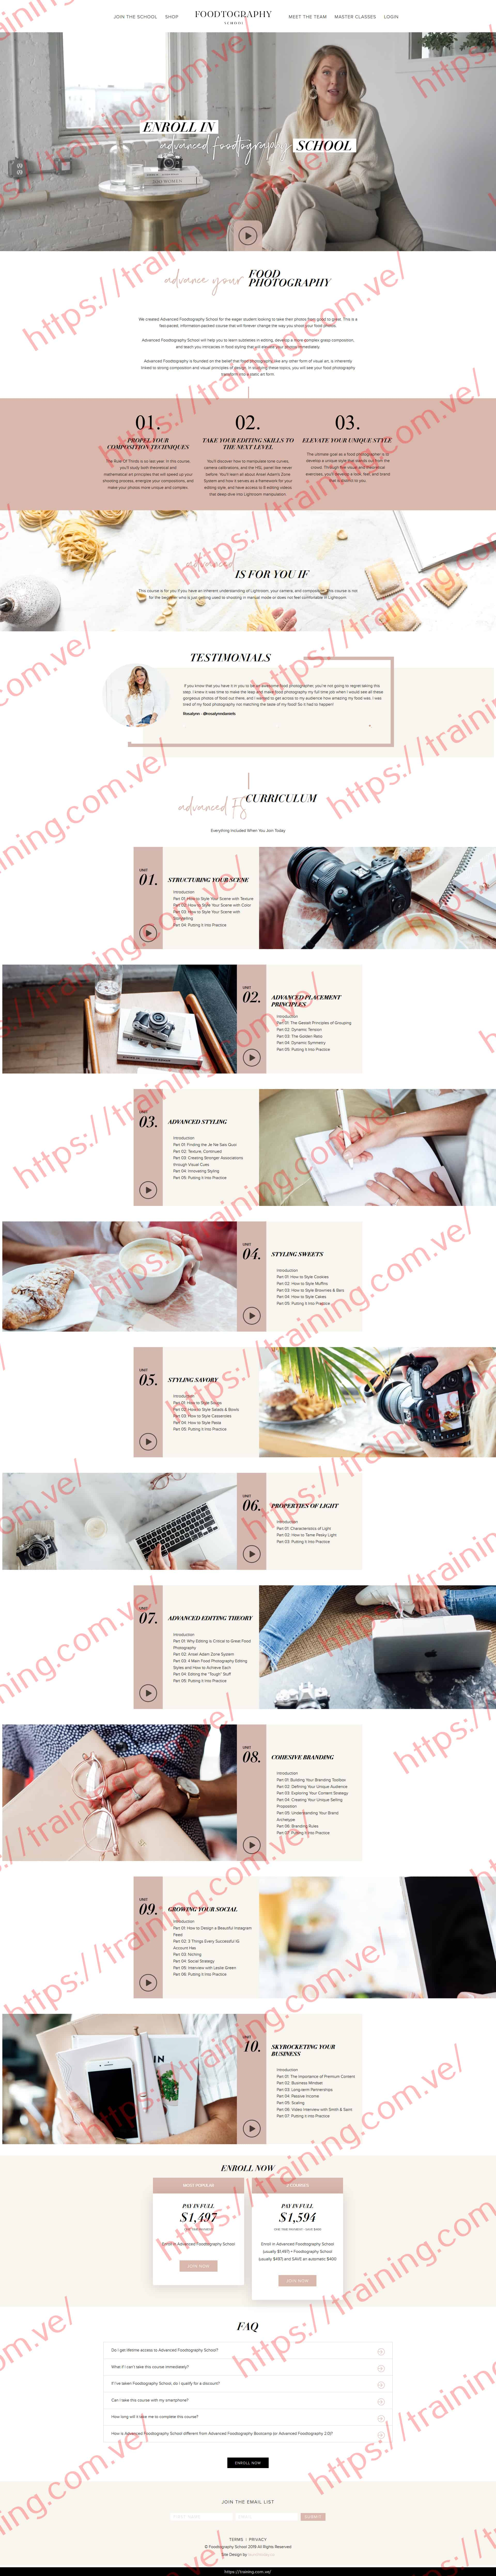 Advanced Foodtography School by Sarah Crawford Sales Page